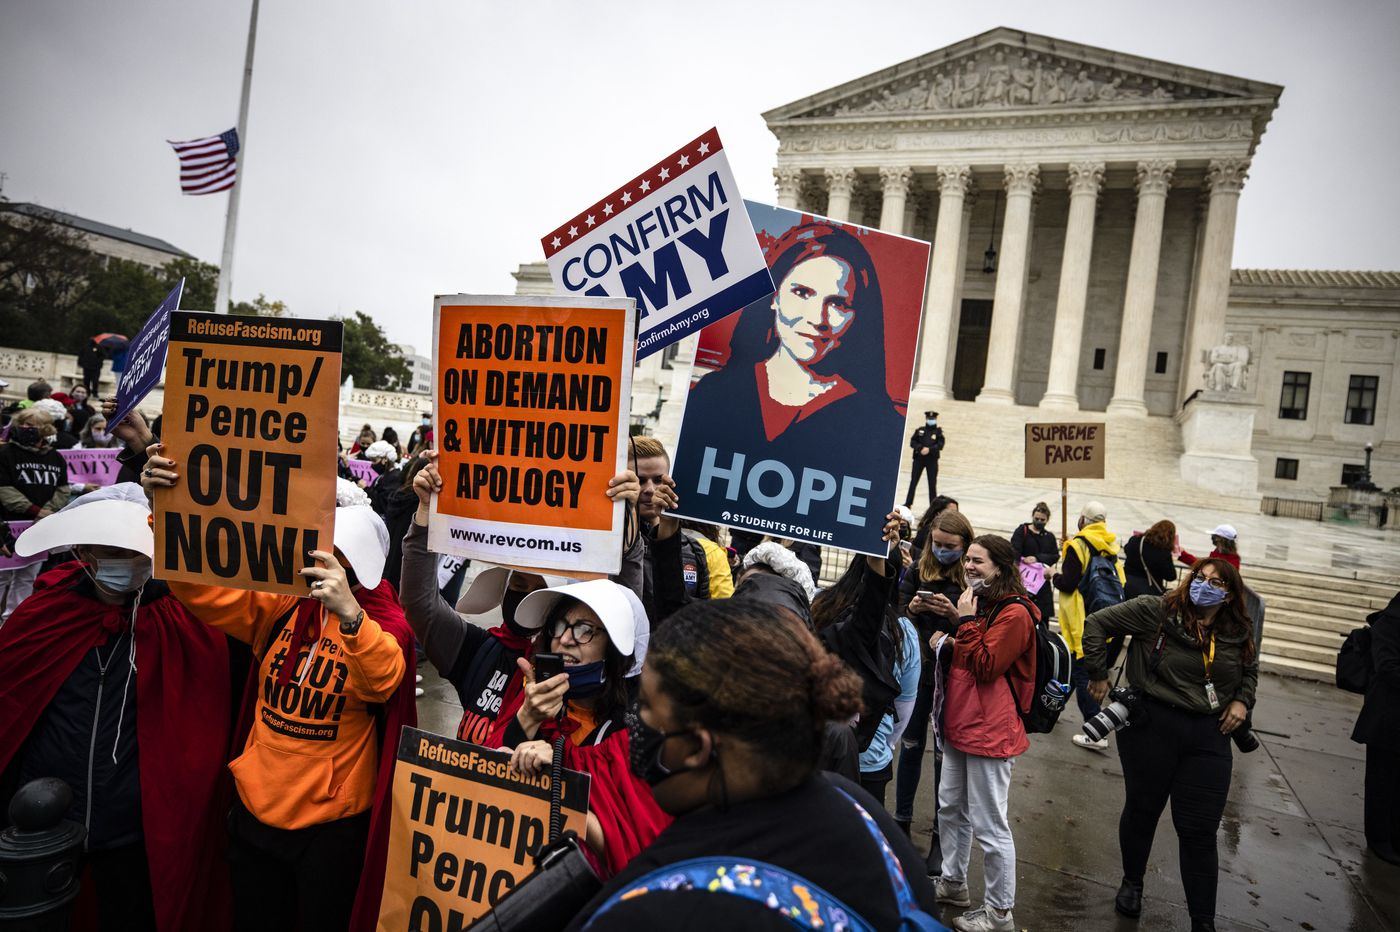 Stop relying on SCOTUS and Roe to protect abortion rights | Opinion